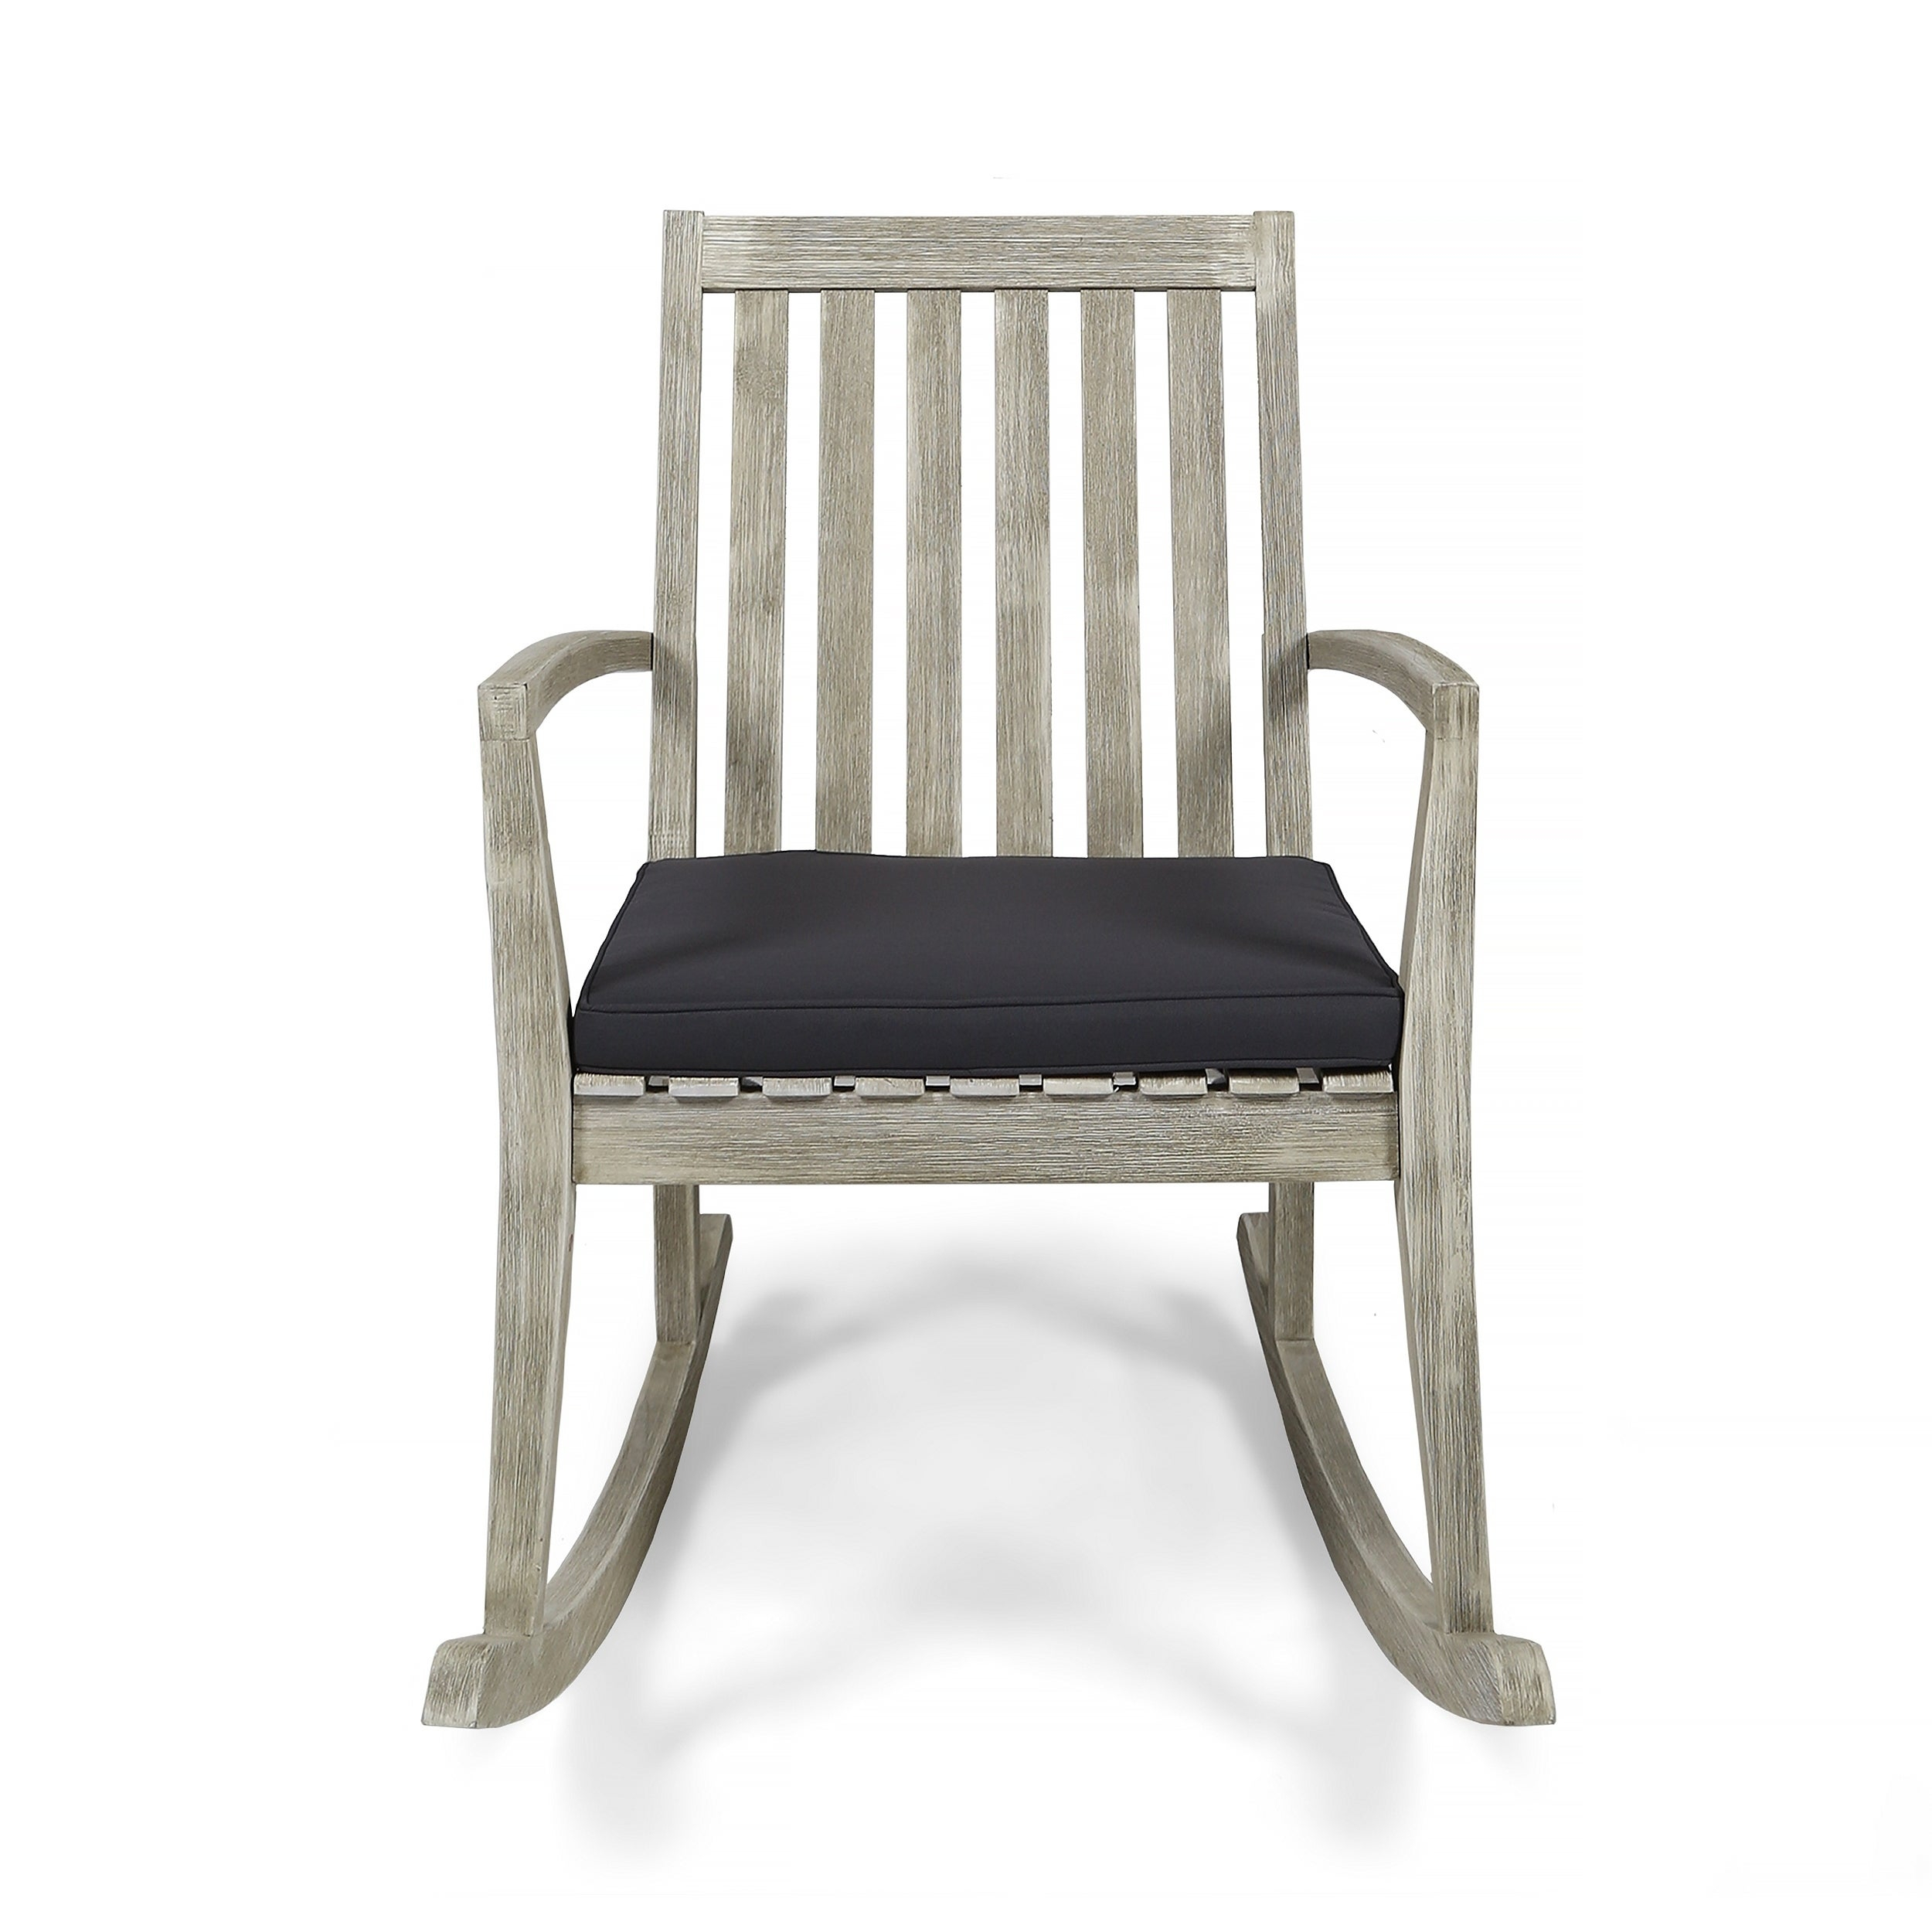 Inspiration about Daneen Traditional Indoor Acacia Wood Rocking Chair With Cushions Christopher Knight Home Regarding Traditional Indoor Acacia Wood Rocking Chairs With Cushions (#2 of 20)